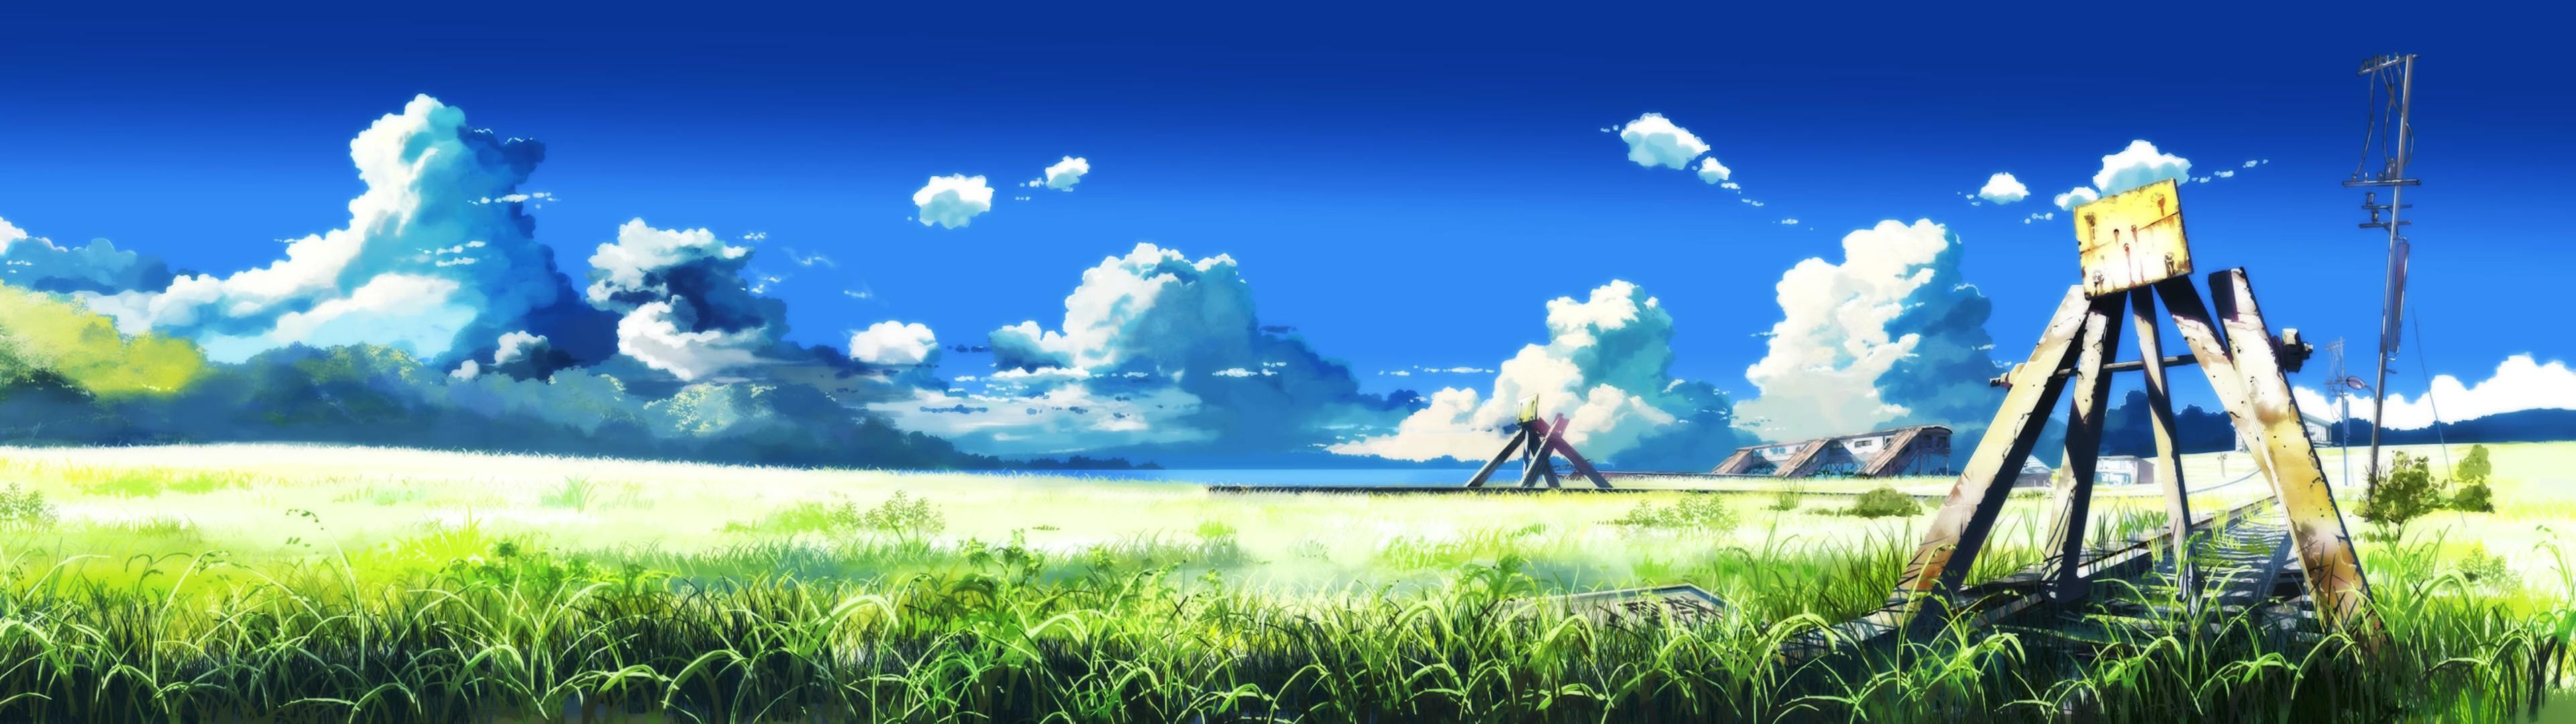 Anime Dual Monitor Wallpaper (46+ images)